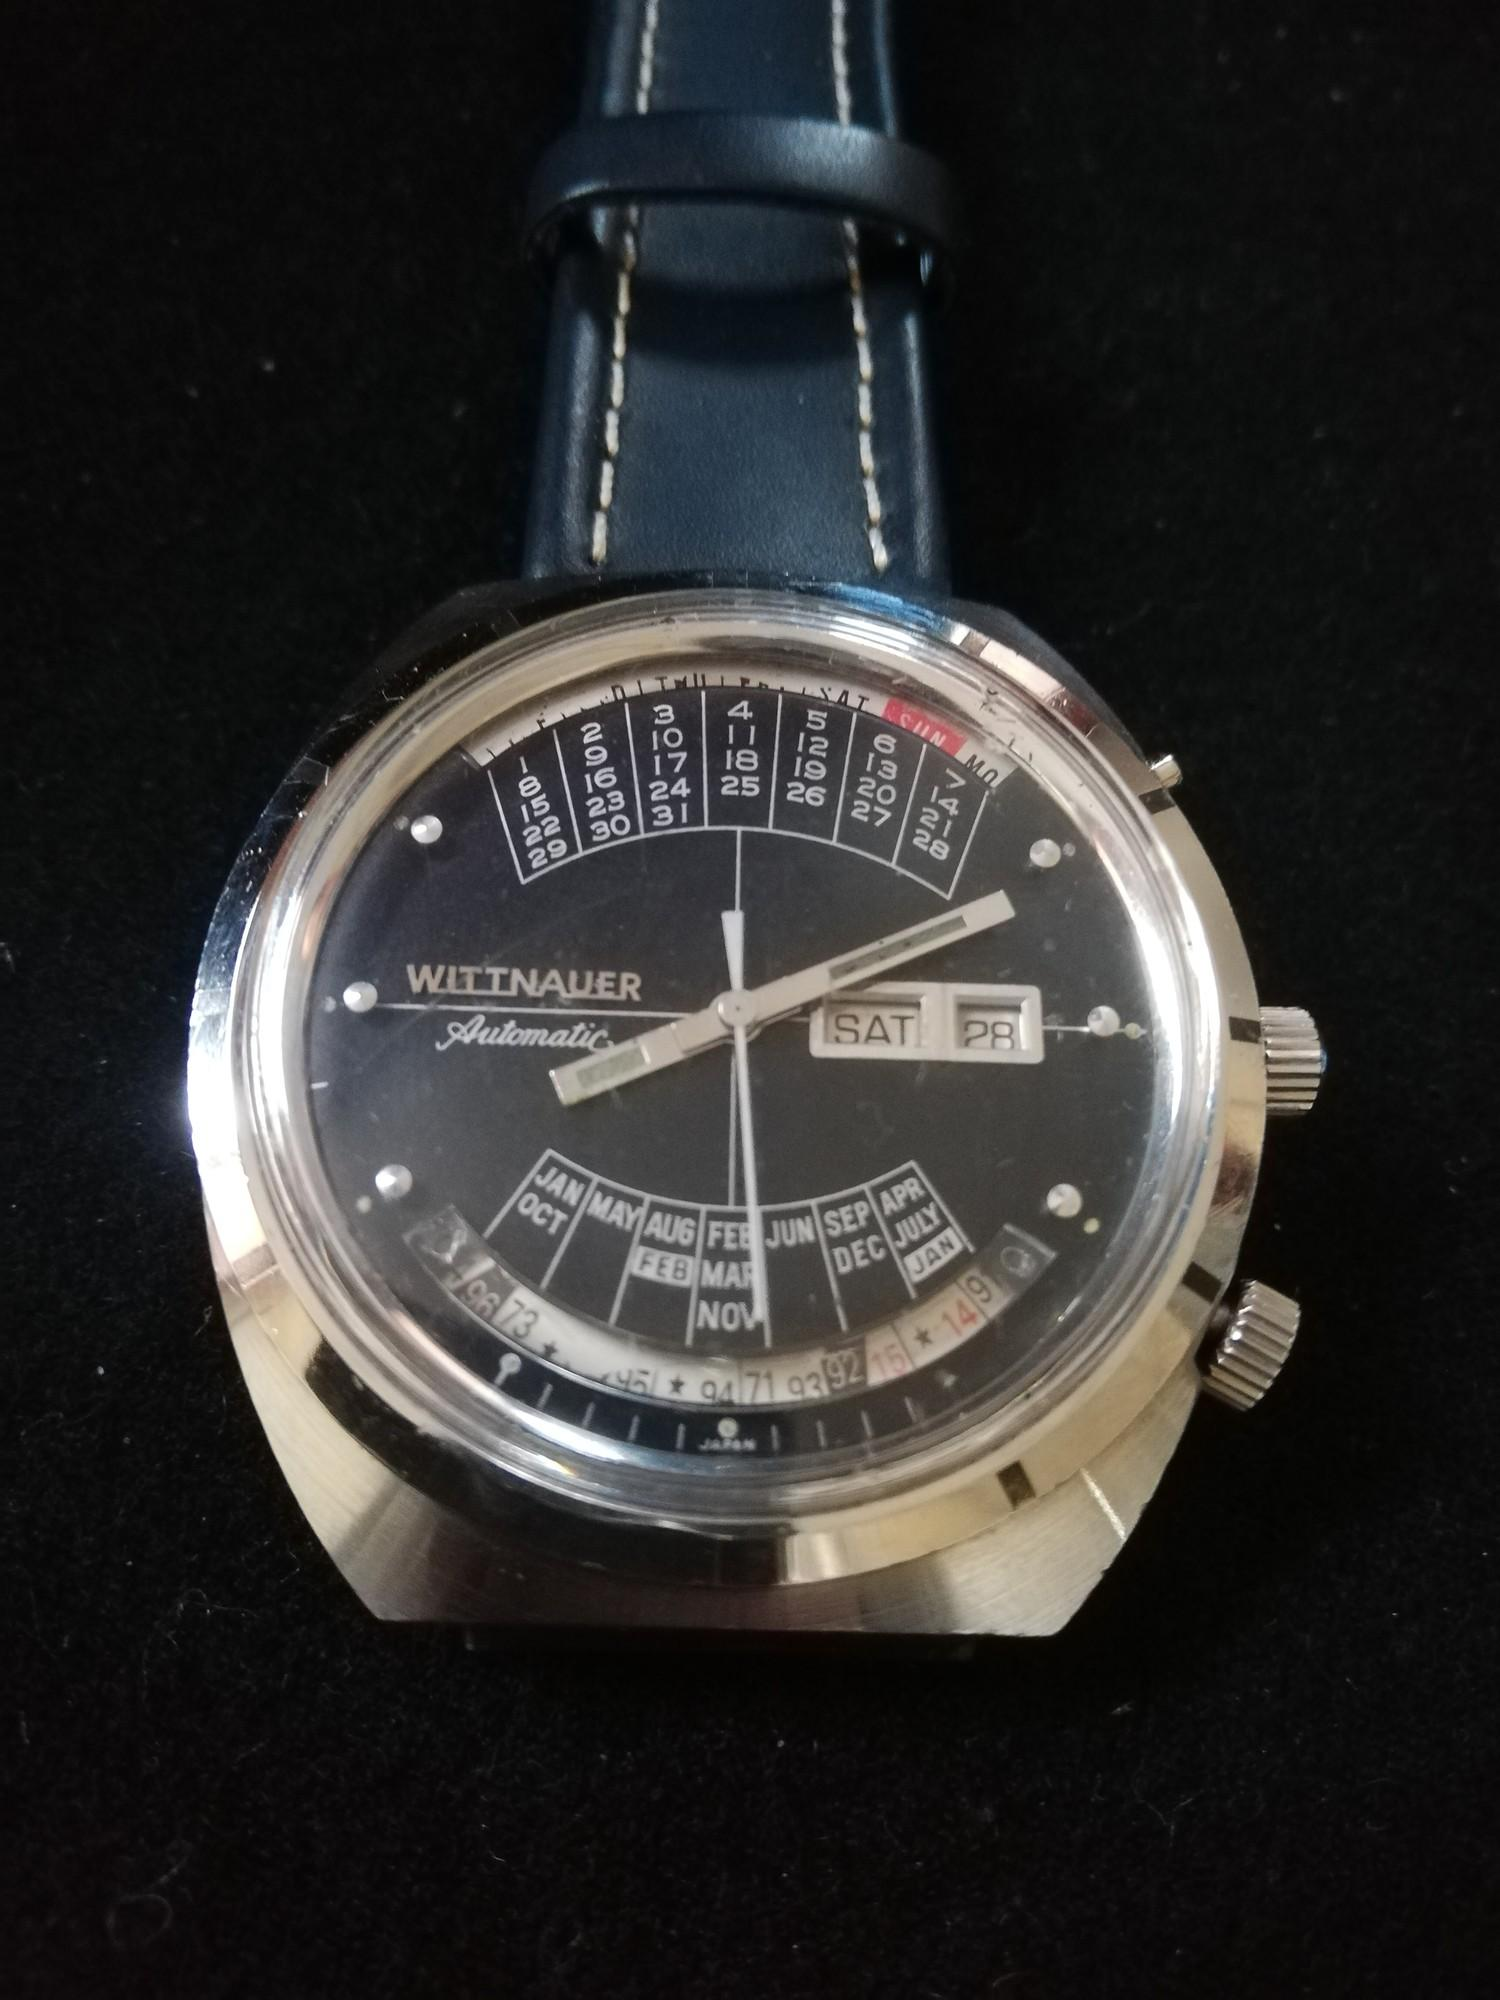 Wittnauer 2000 automatic perpetual calendar watch -stainless steel case & leather strap